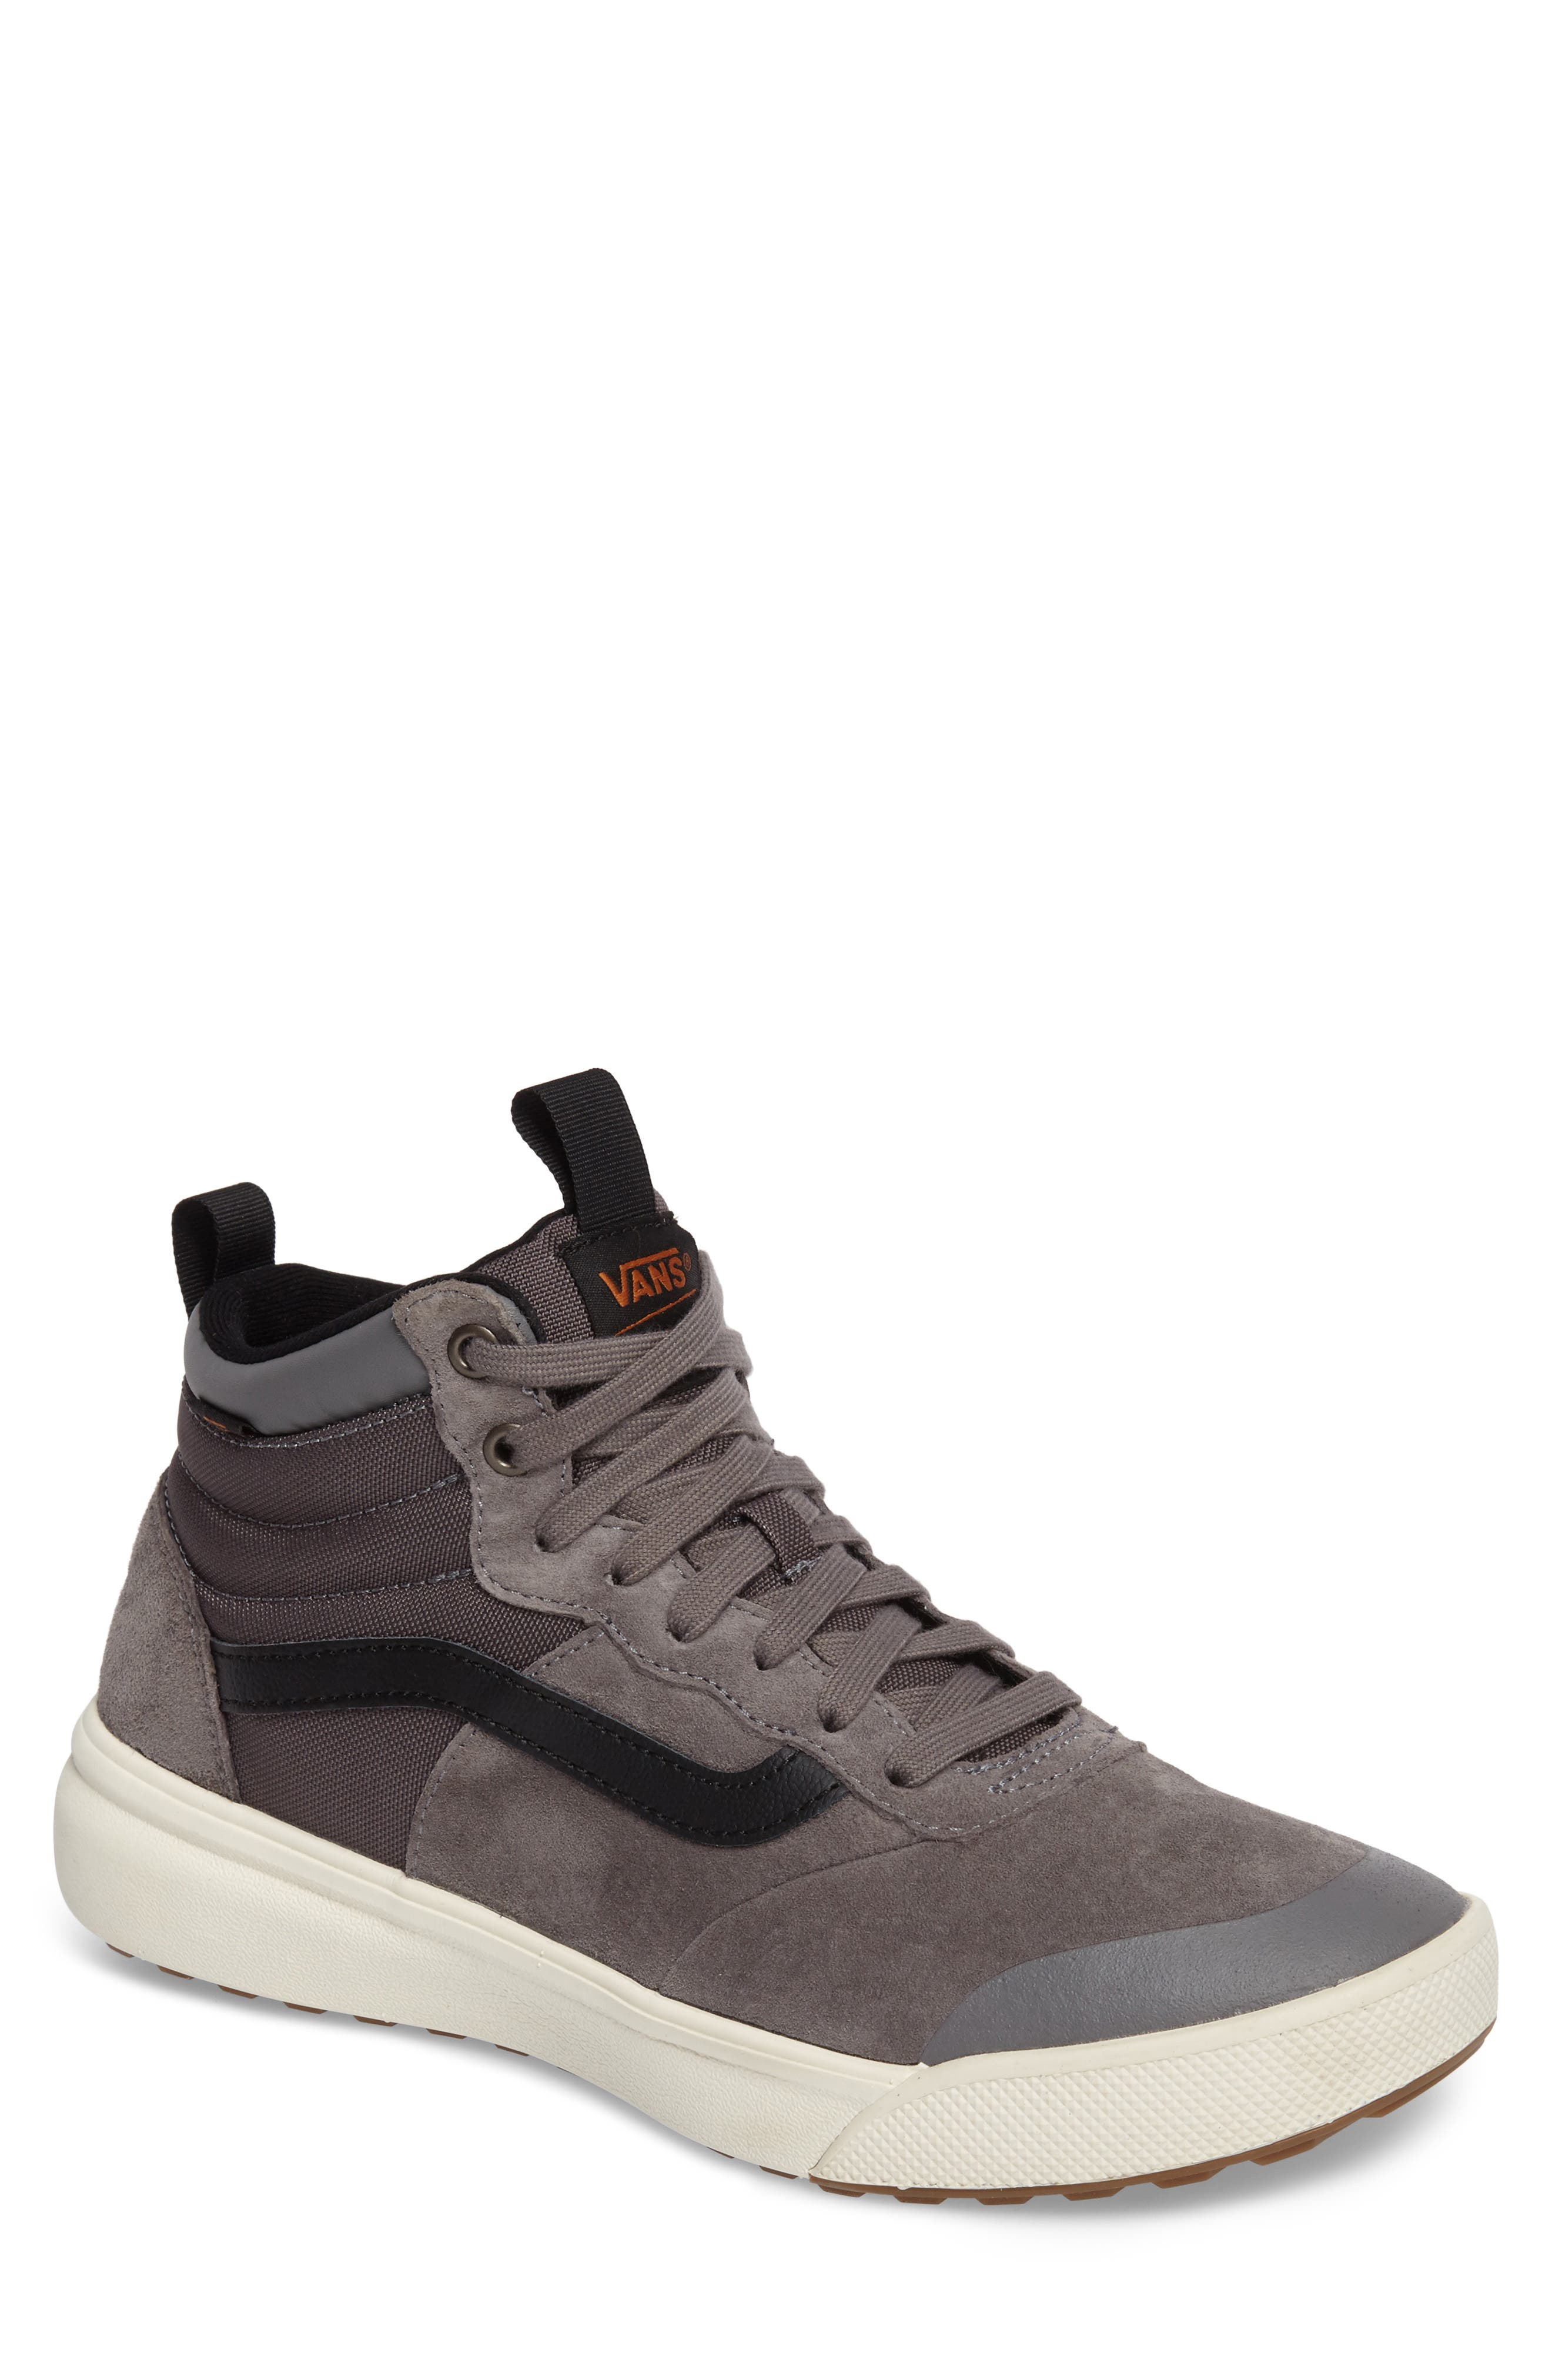 Vans Ultrarange Hi Sneaker (Men)